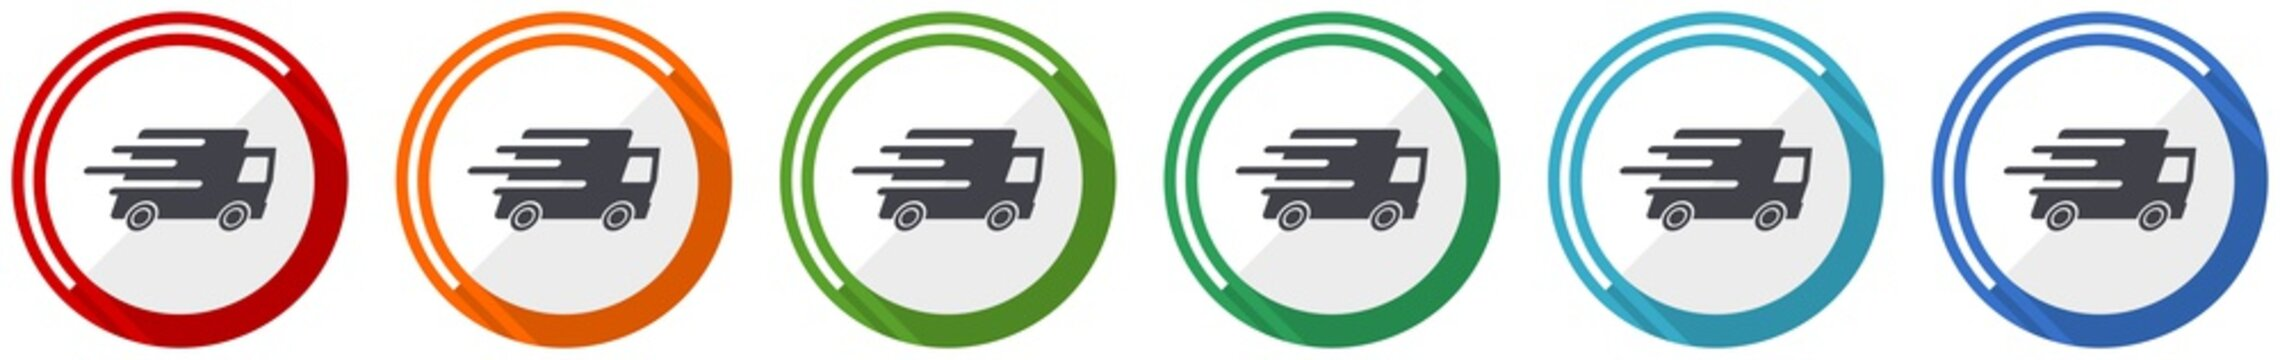 Speed transport icon set, fast delivery, truck flat design vector illustration in 6 colors options for webdesign and mobile applications